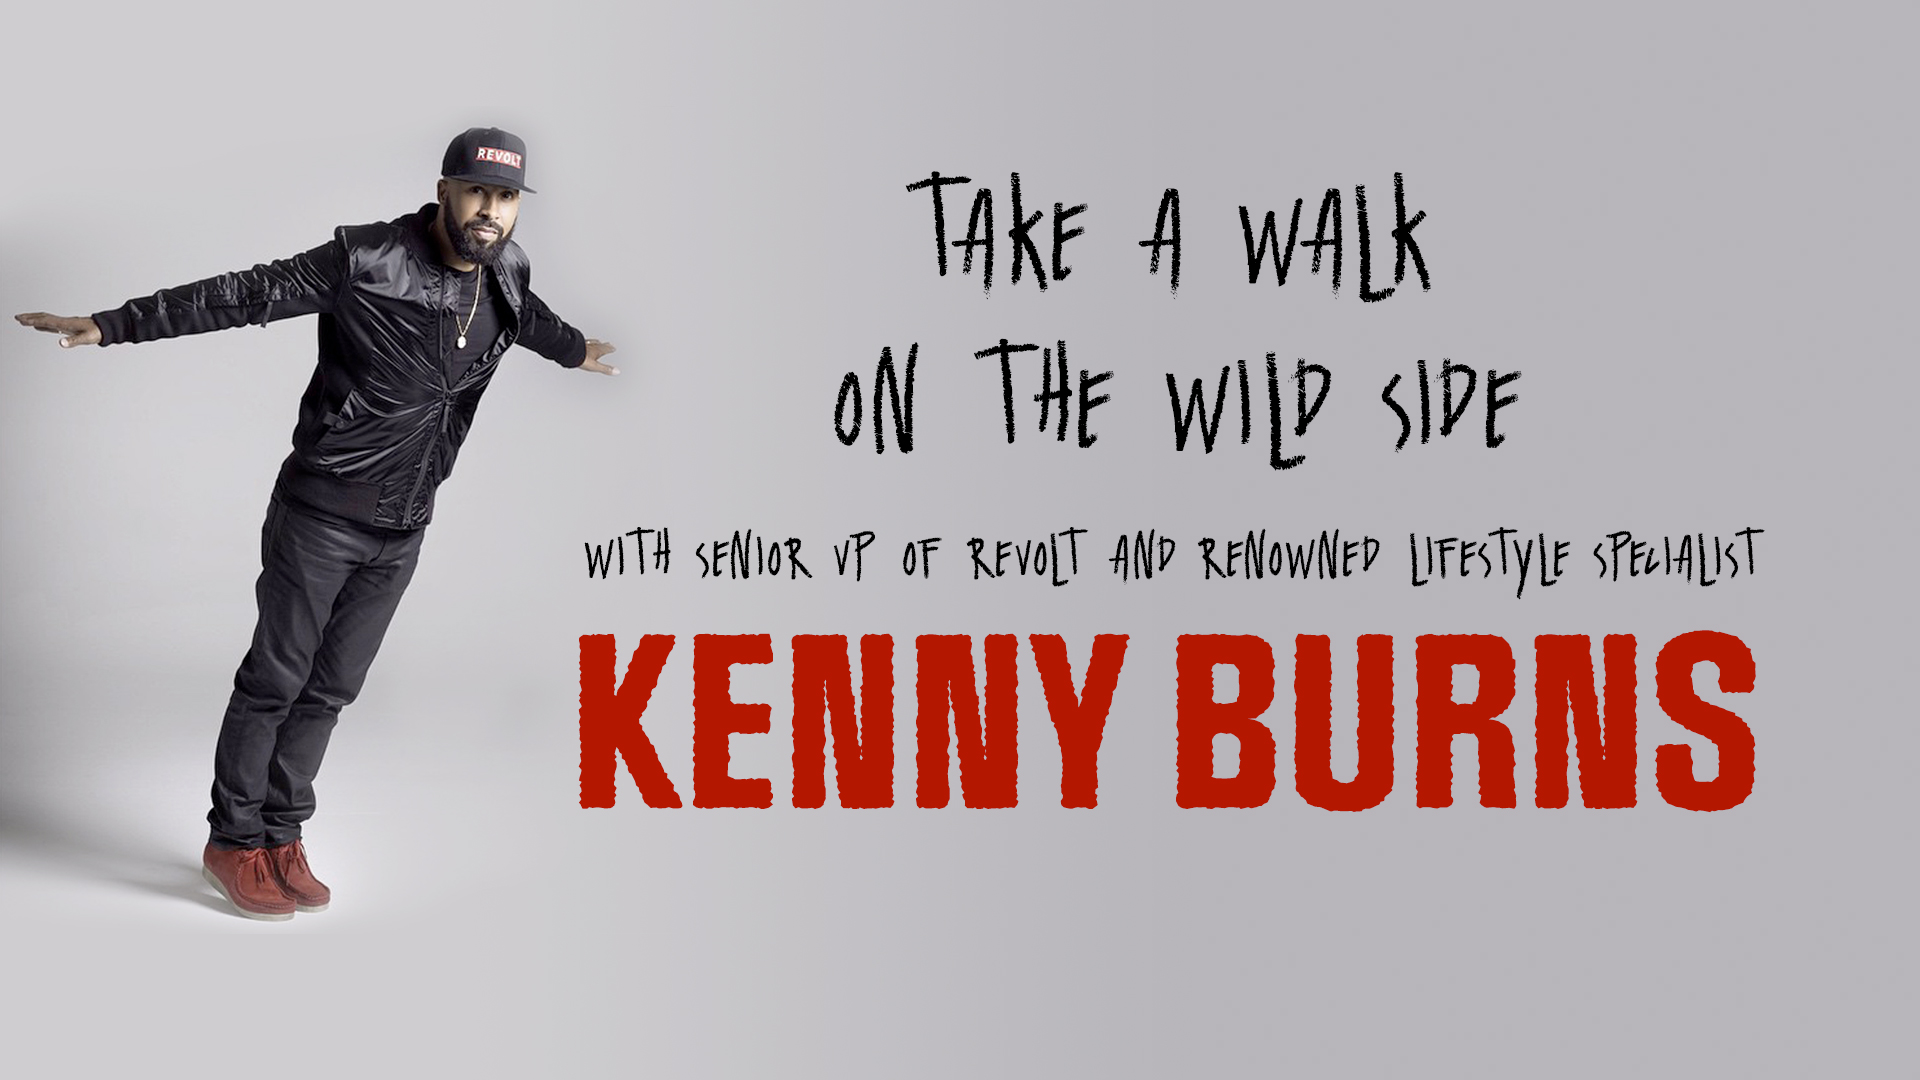 Take a walk on the wild side WITH SENIOR VP OF REVOLT AND RENOWNED LIFESTYLE SPECIALIST KENNY BURNS